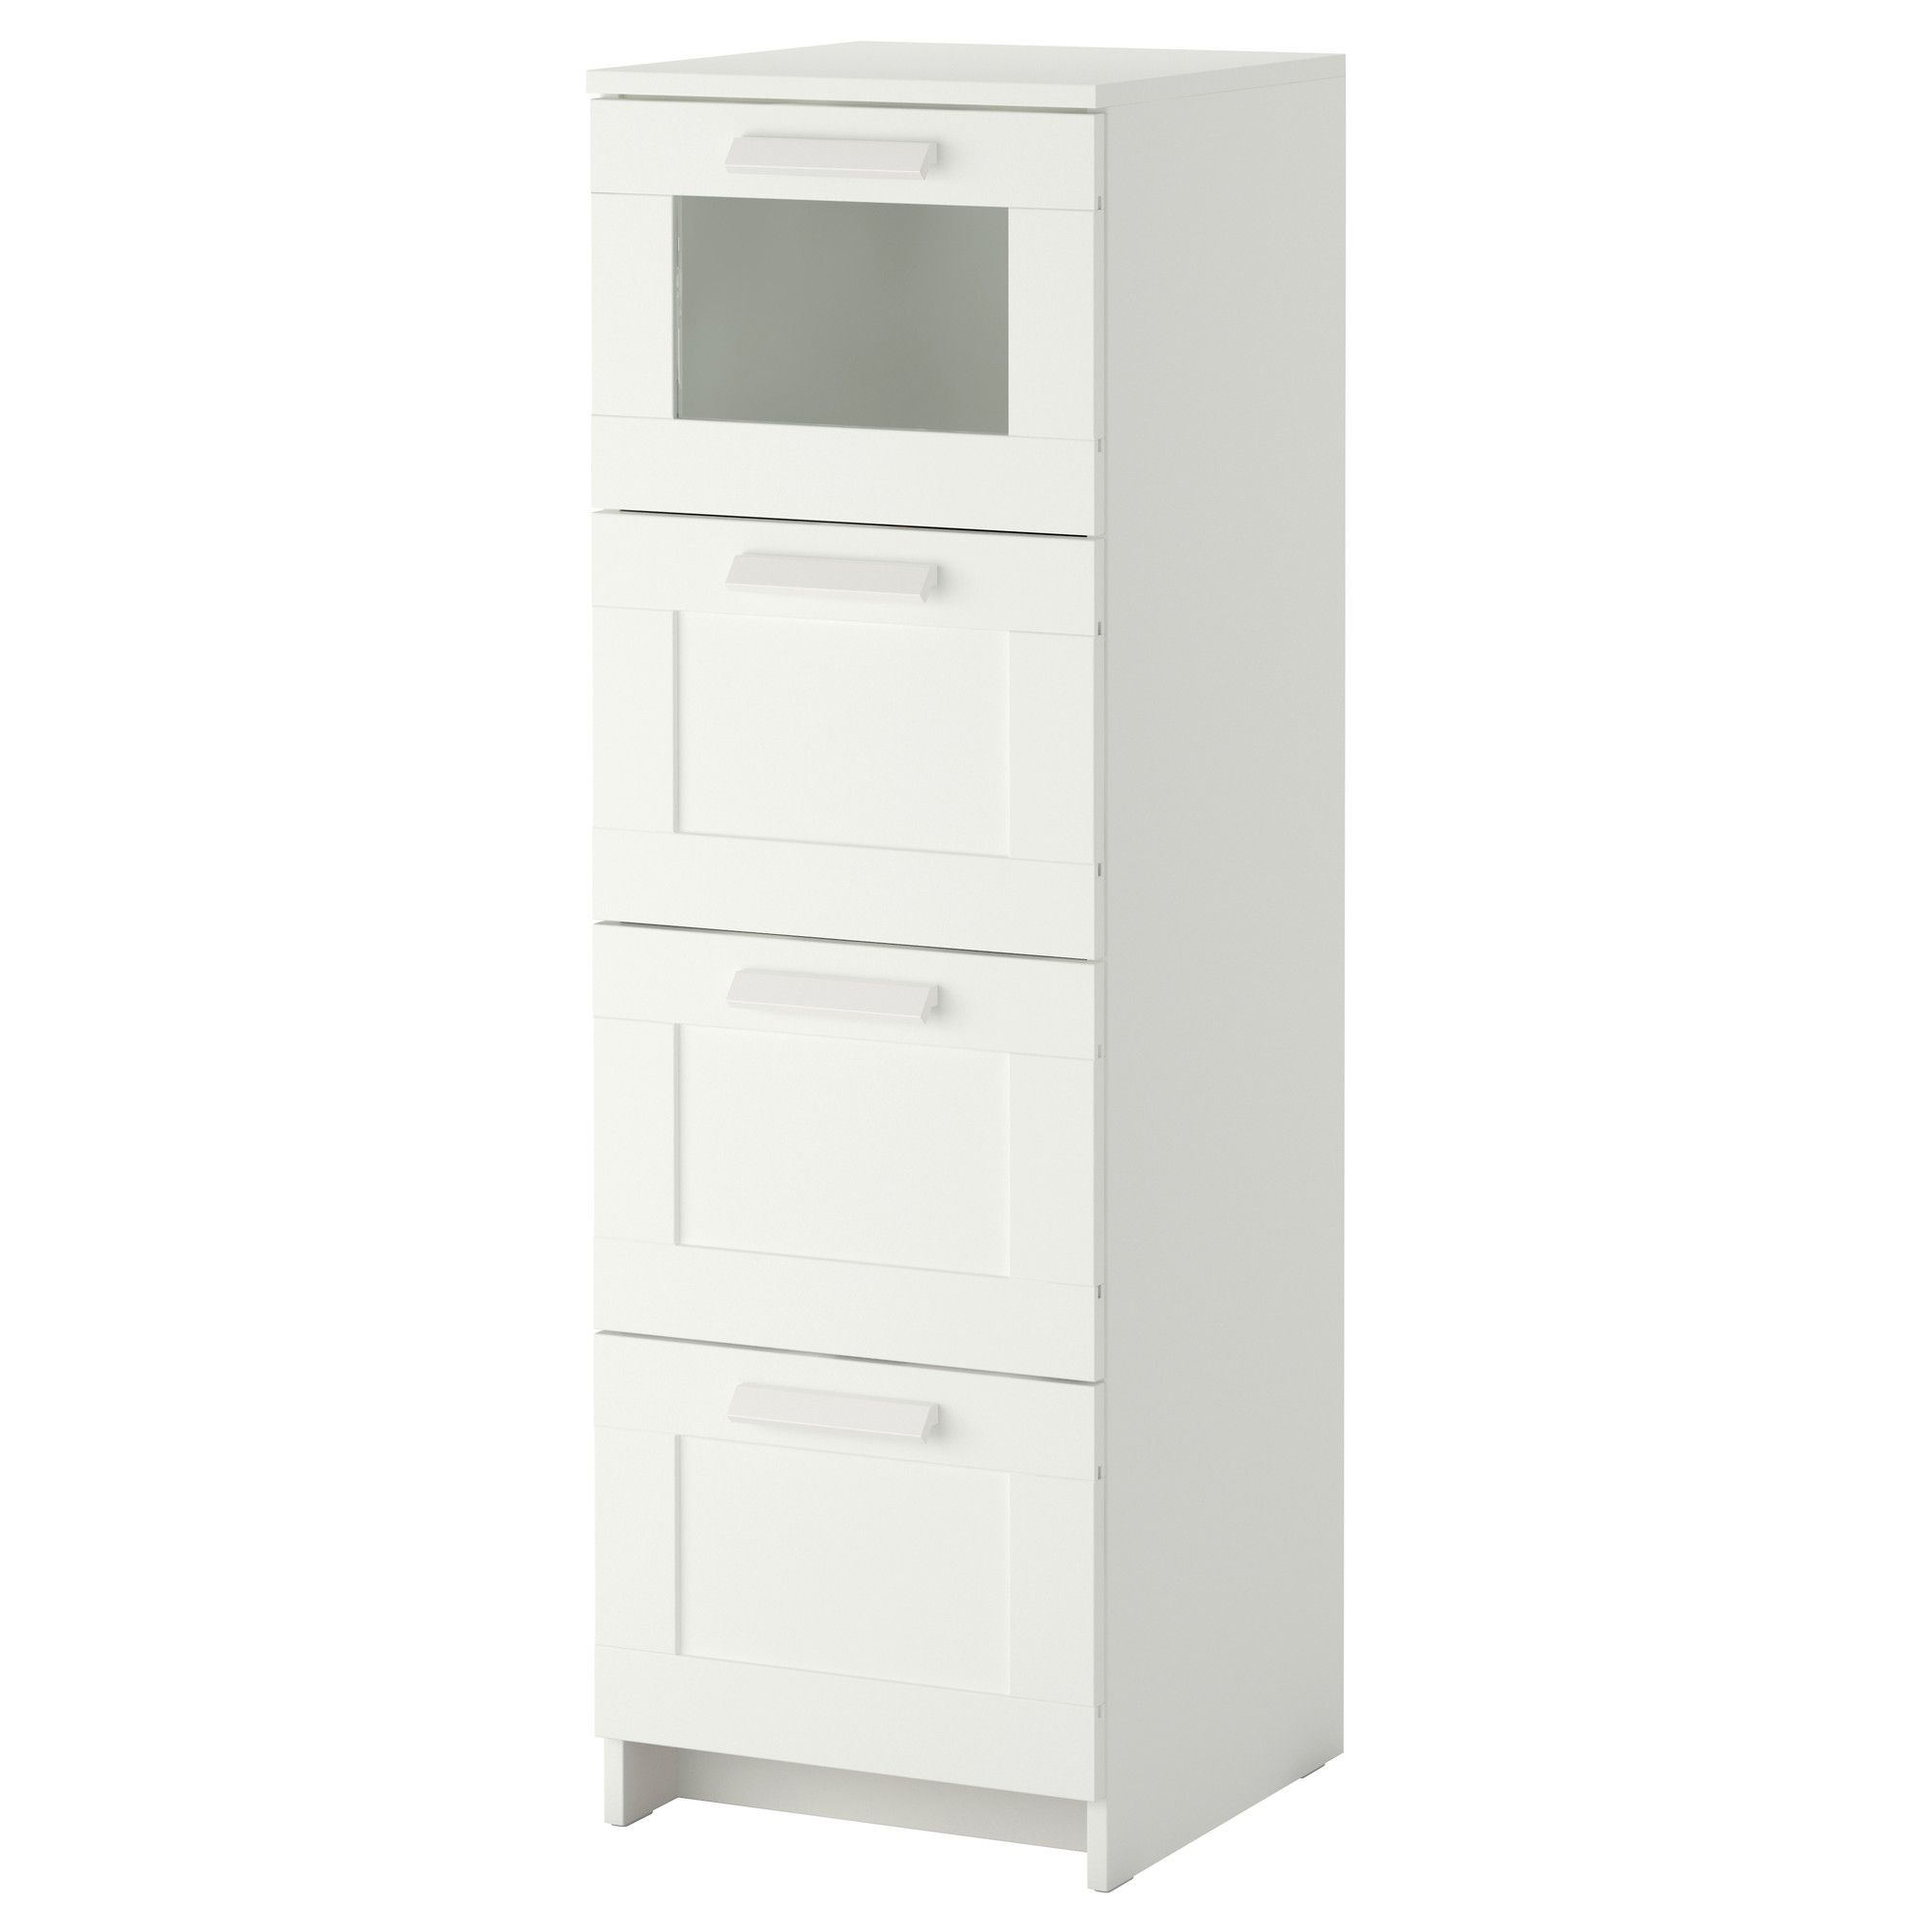 sliding state plus door in ideas walk pax design hanger and as along bedroom racks organizer wells drawer clos charming drawers system together mg ikea with closet also wardrobe